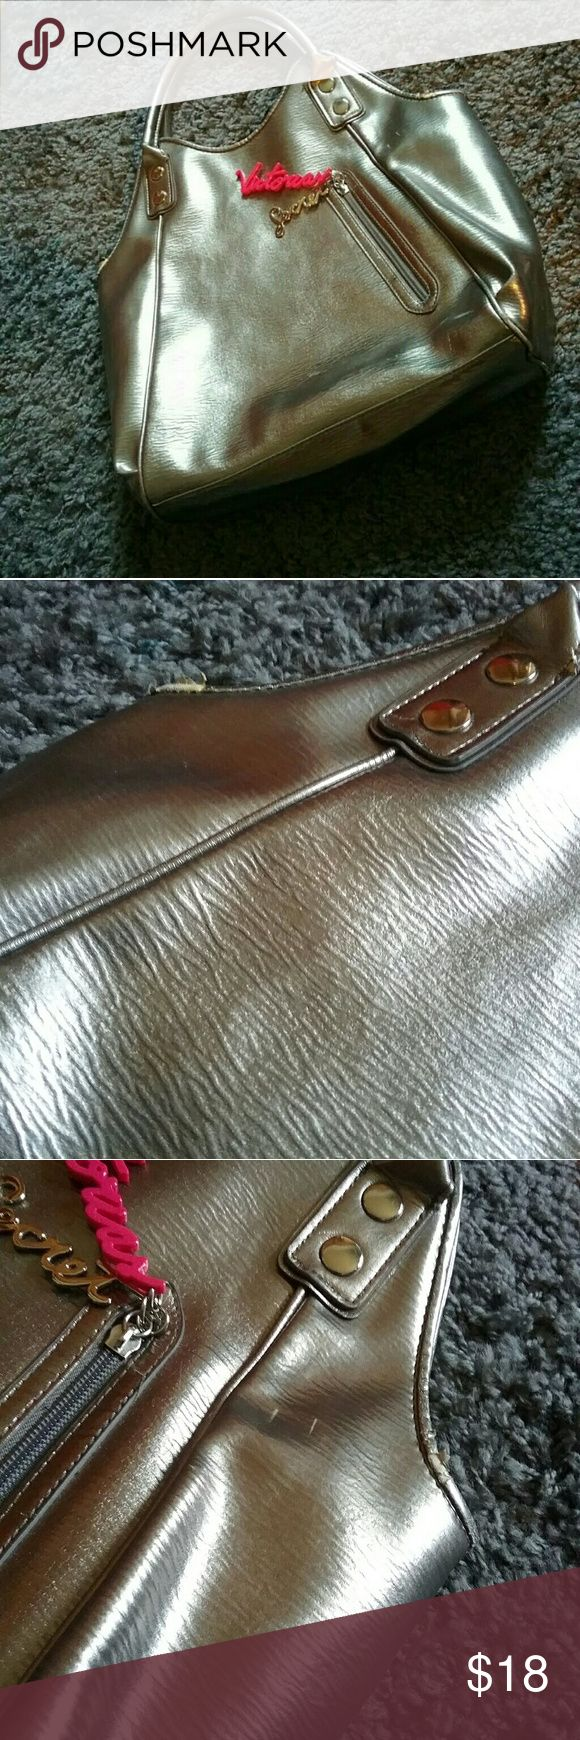 Victoria's Secret Metallic Handbag GREAT purse with a lot of Room! Gold metallic has a bit of wear see photos, in great condition! Victoria's Secret Bags